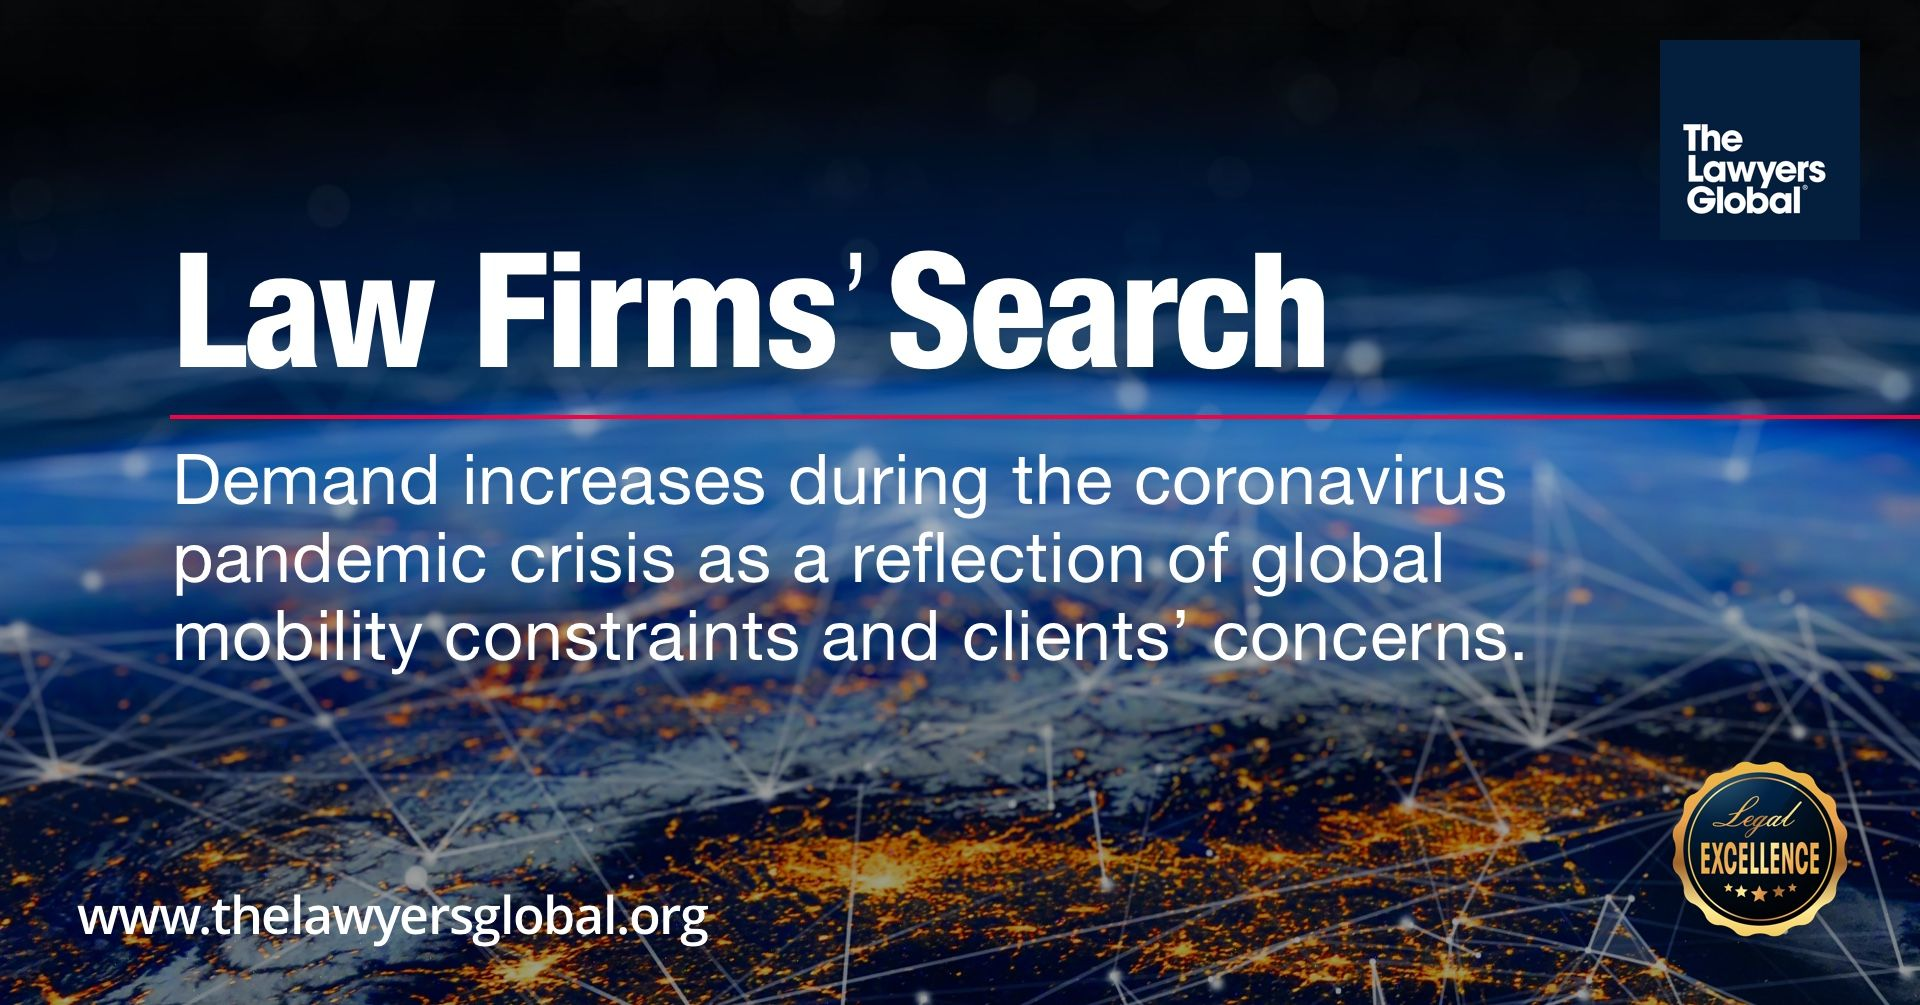 Law Firms' Search increase